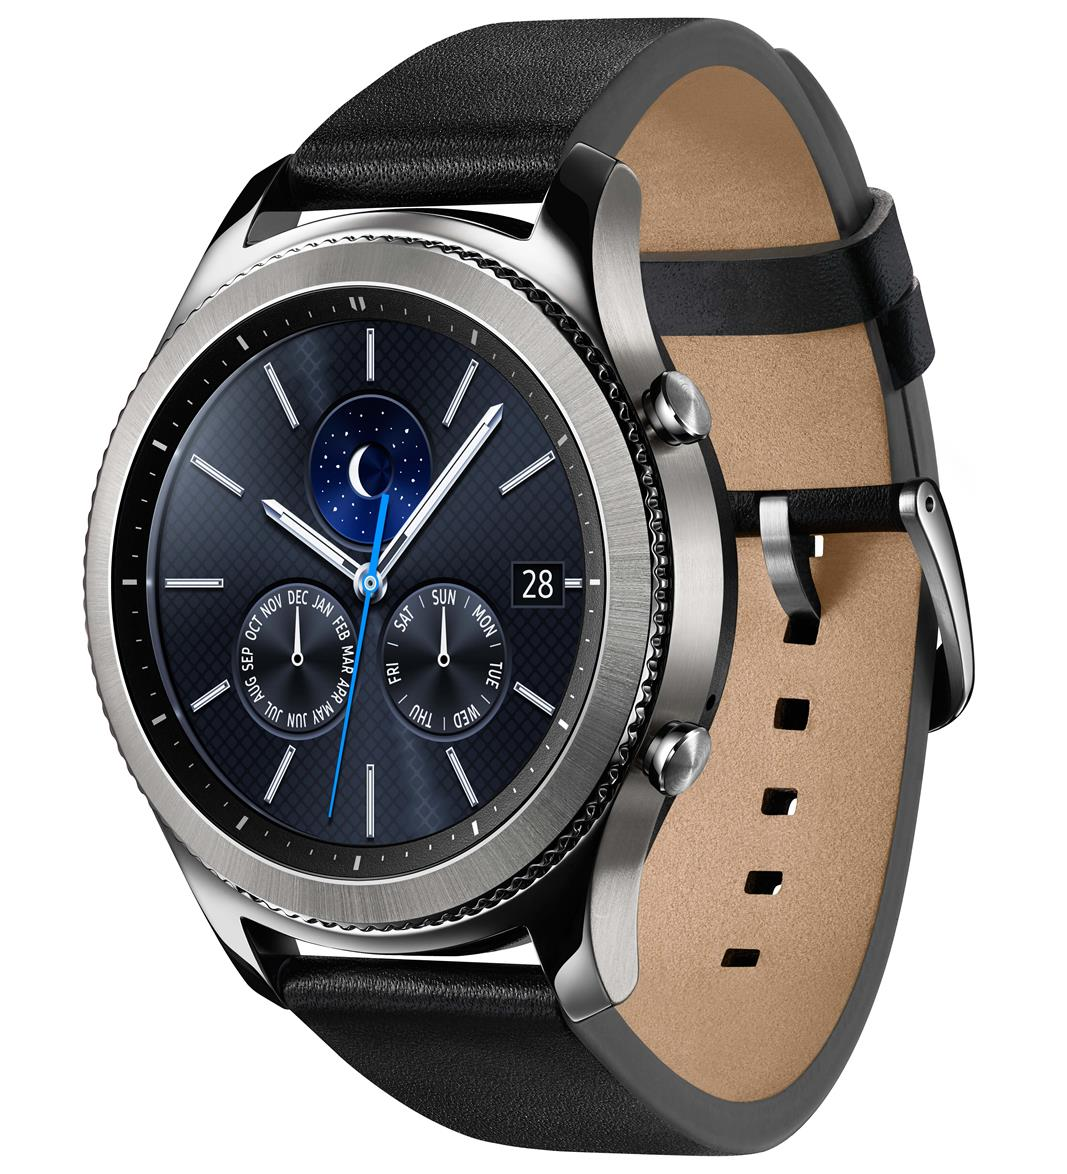 Samsung announces Gear S3 in 2 variants at IFA 2016